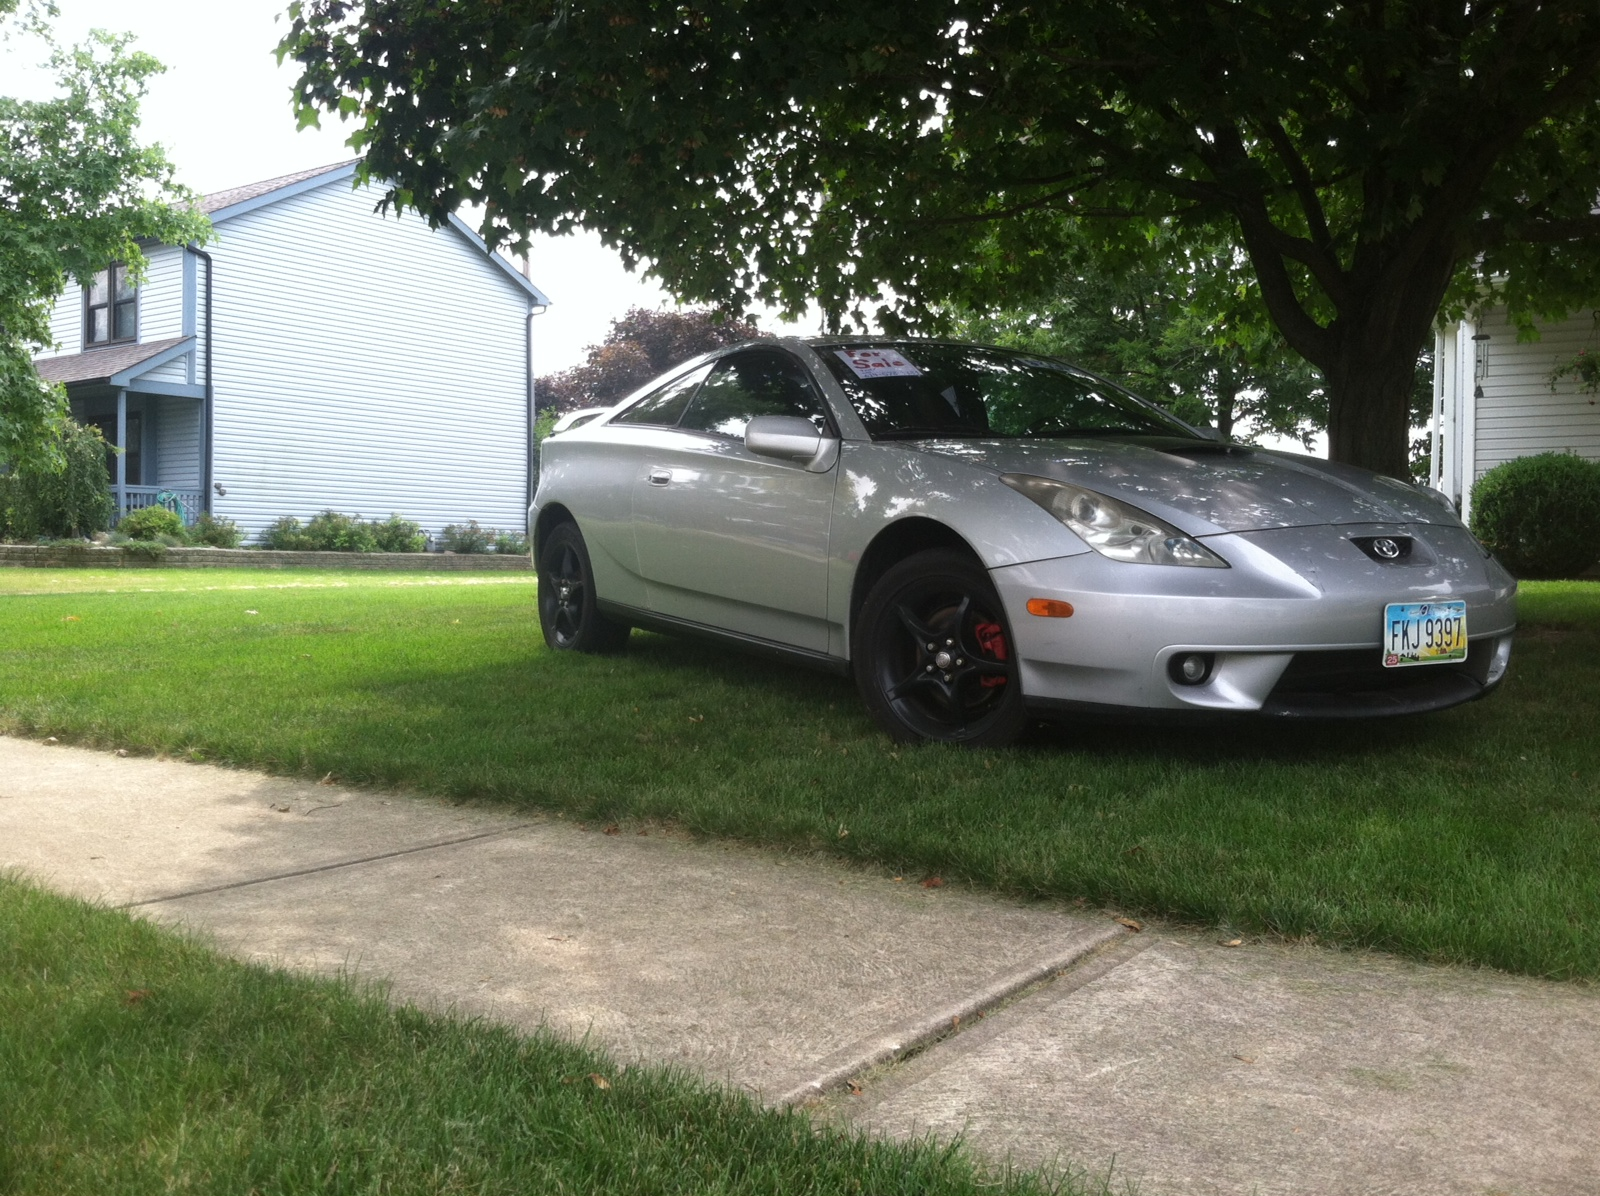 Craigslist Cars For Sale Toyota Celica